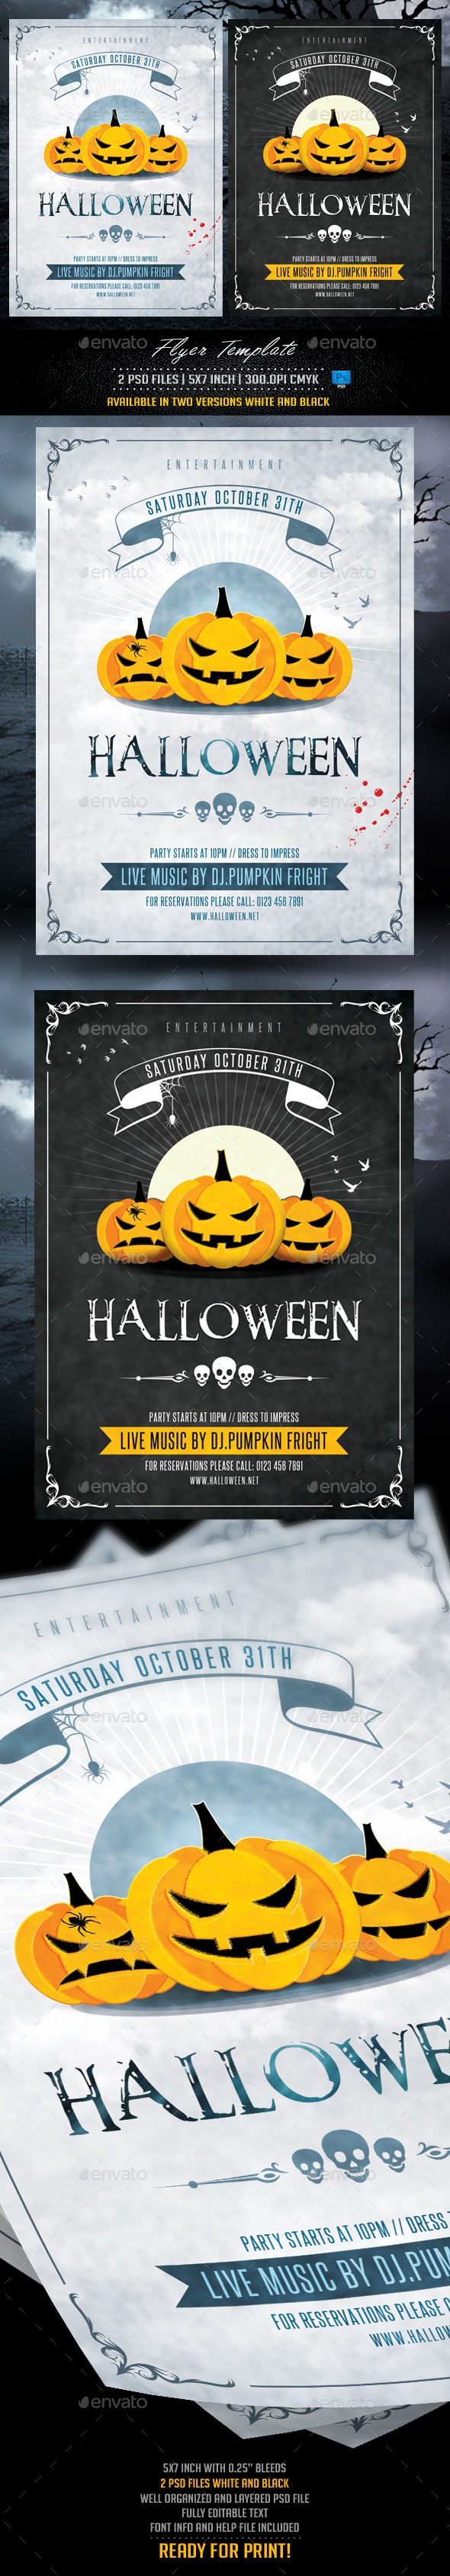 Halloween Flyer Template White and Black